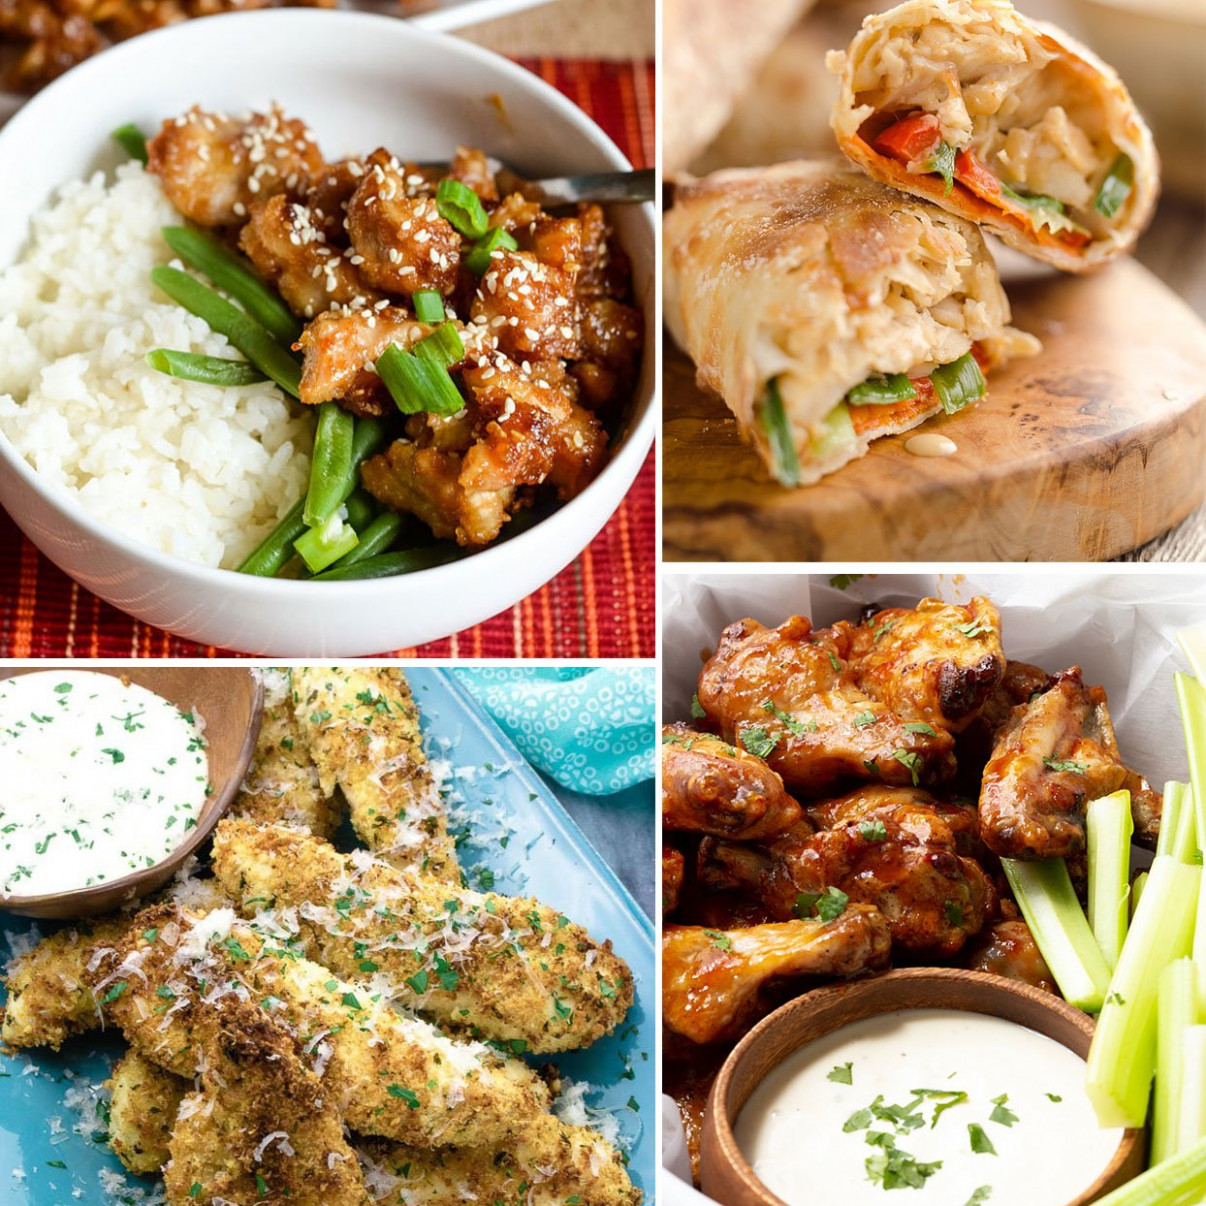 Healthy Air Fryer Chicken Recipes | Shape - Recipes Air Fryer Dinner